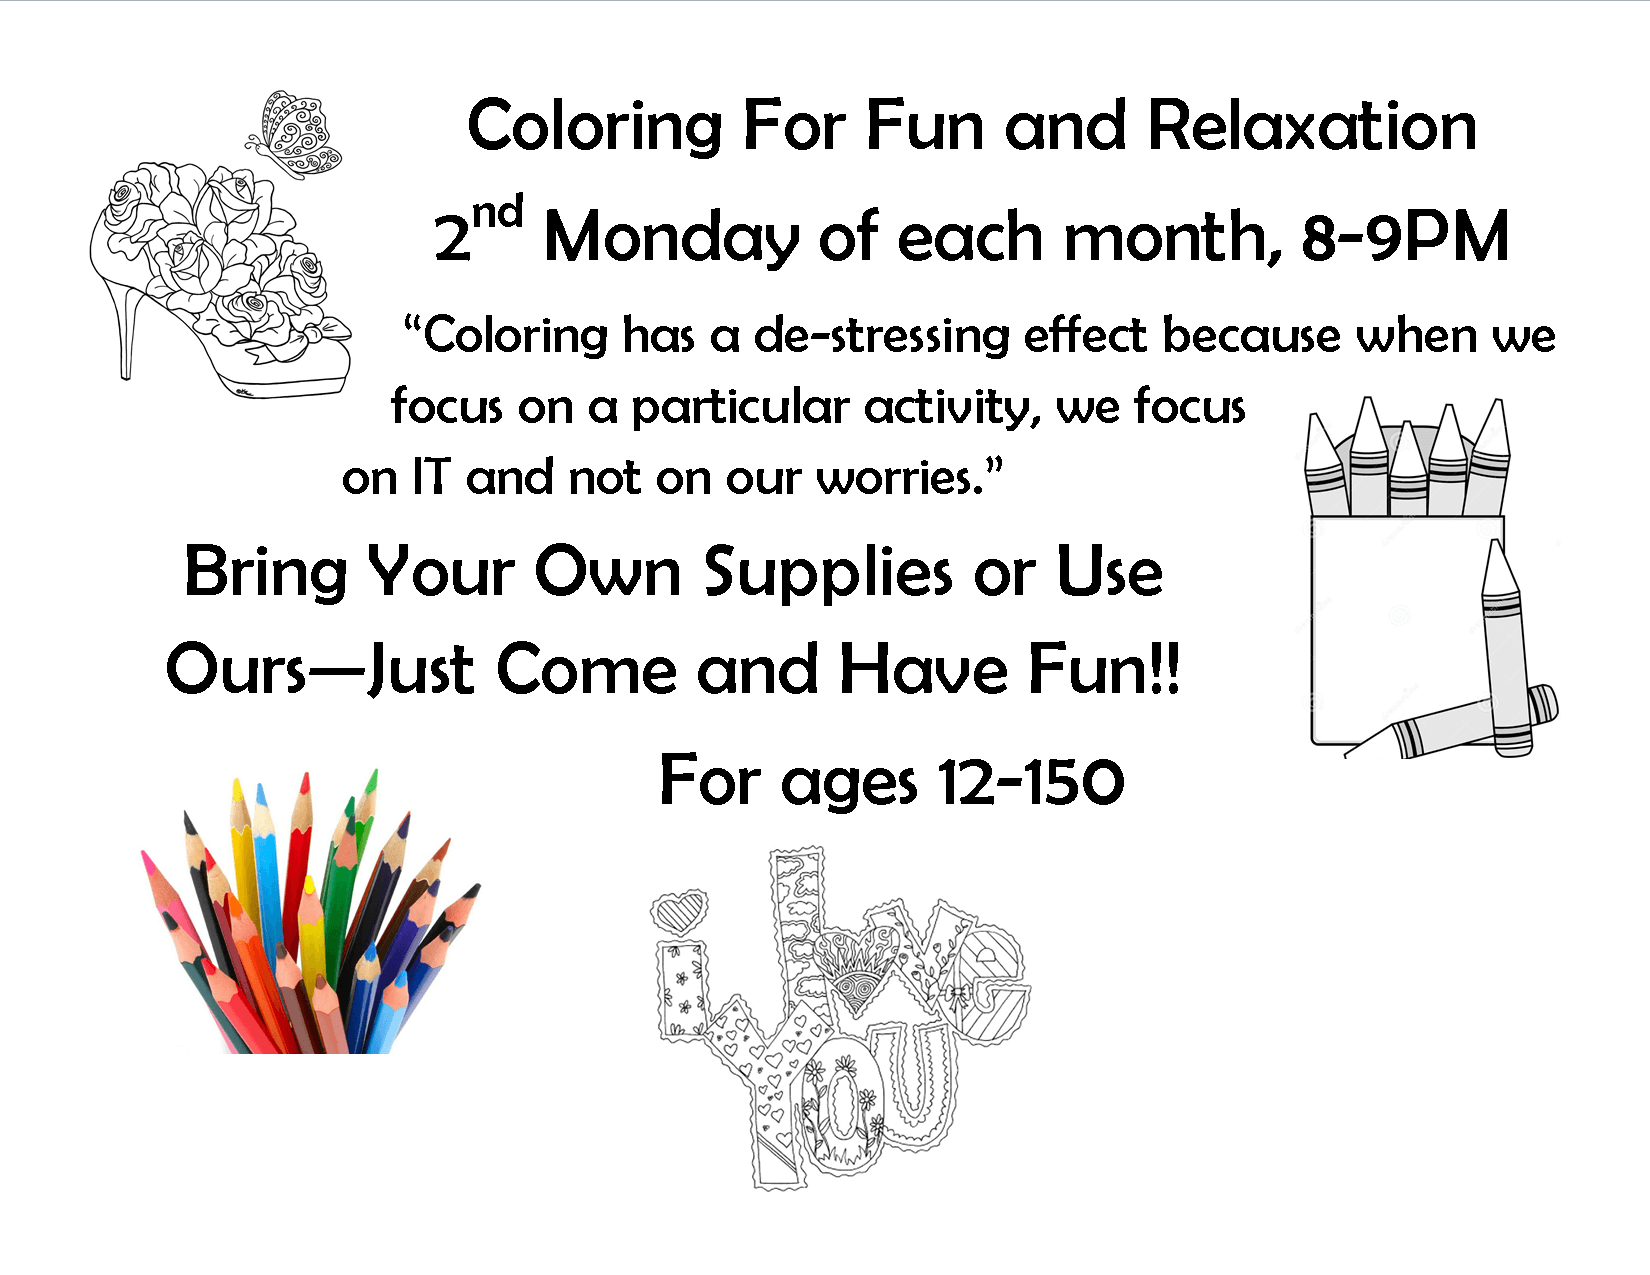 Poster for the coloring for relaxation event